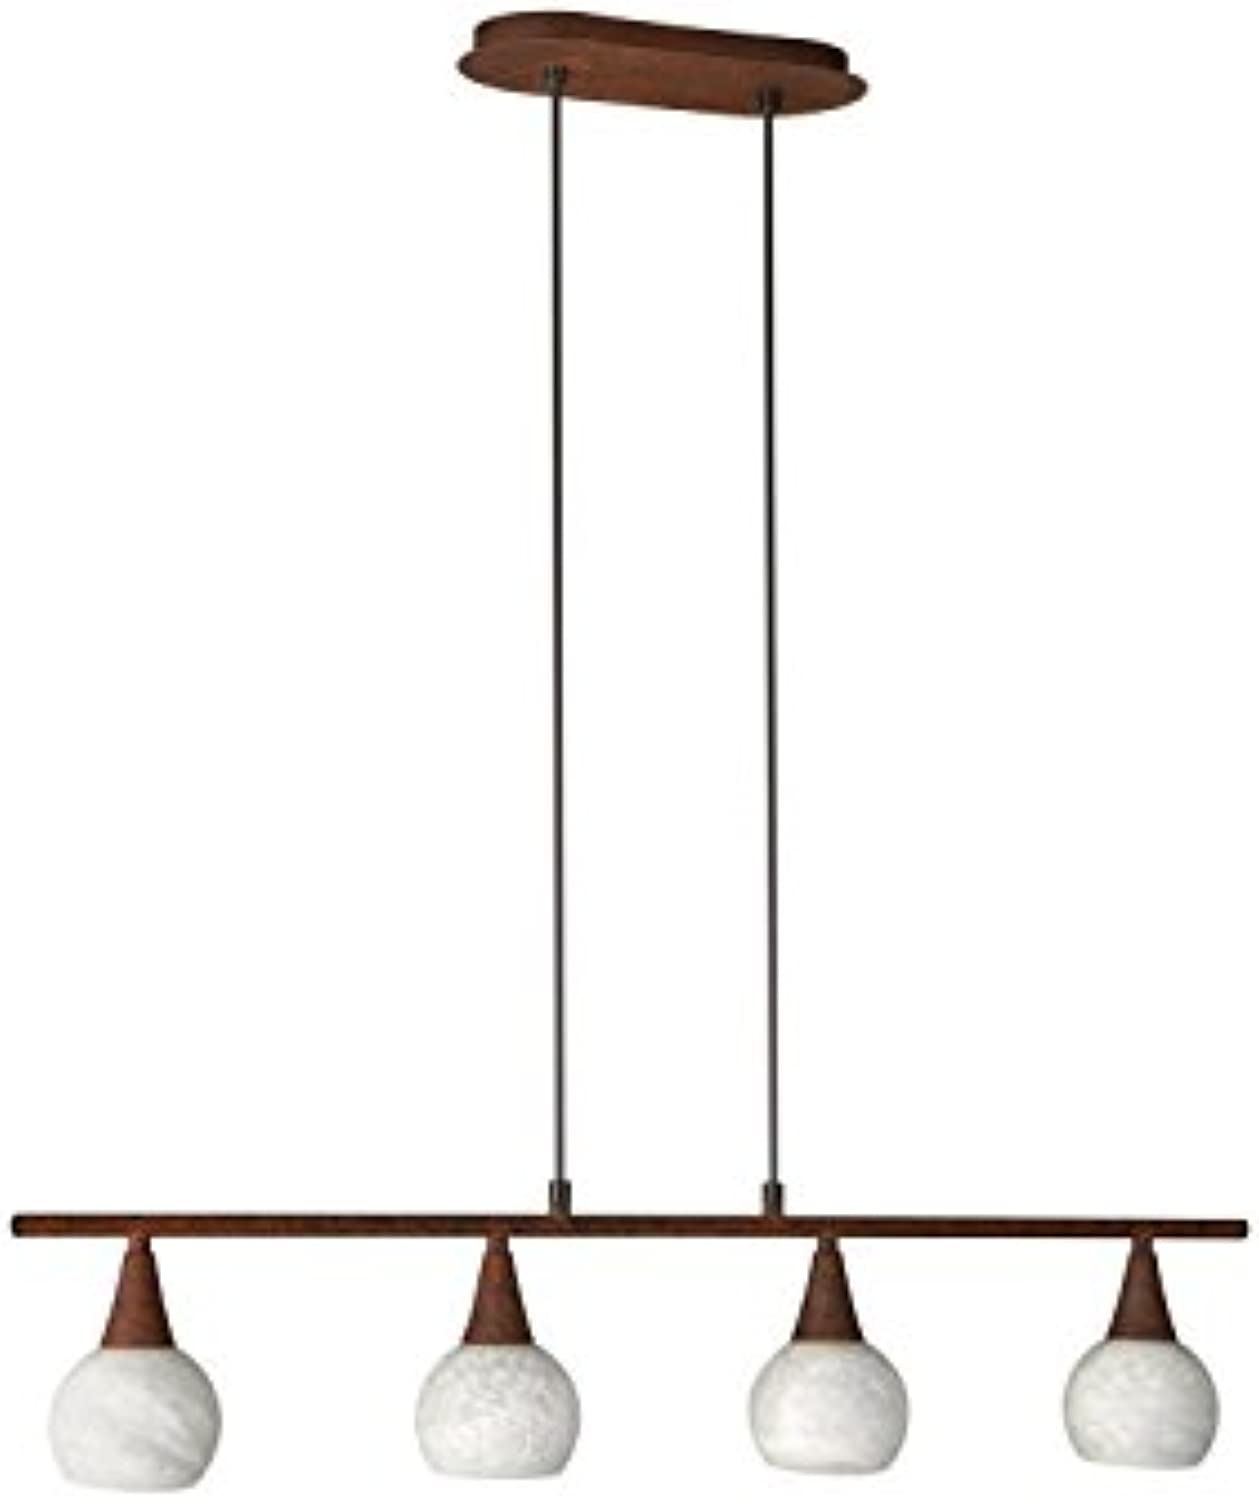 Massive Suspension light Pendelleuchte, Metall, E14, braun, 80.7 x 0 x 150 cm